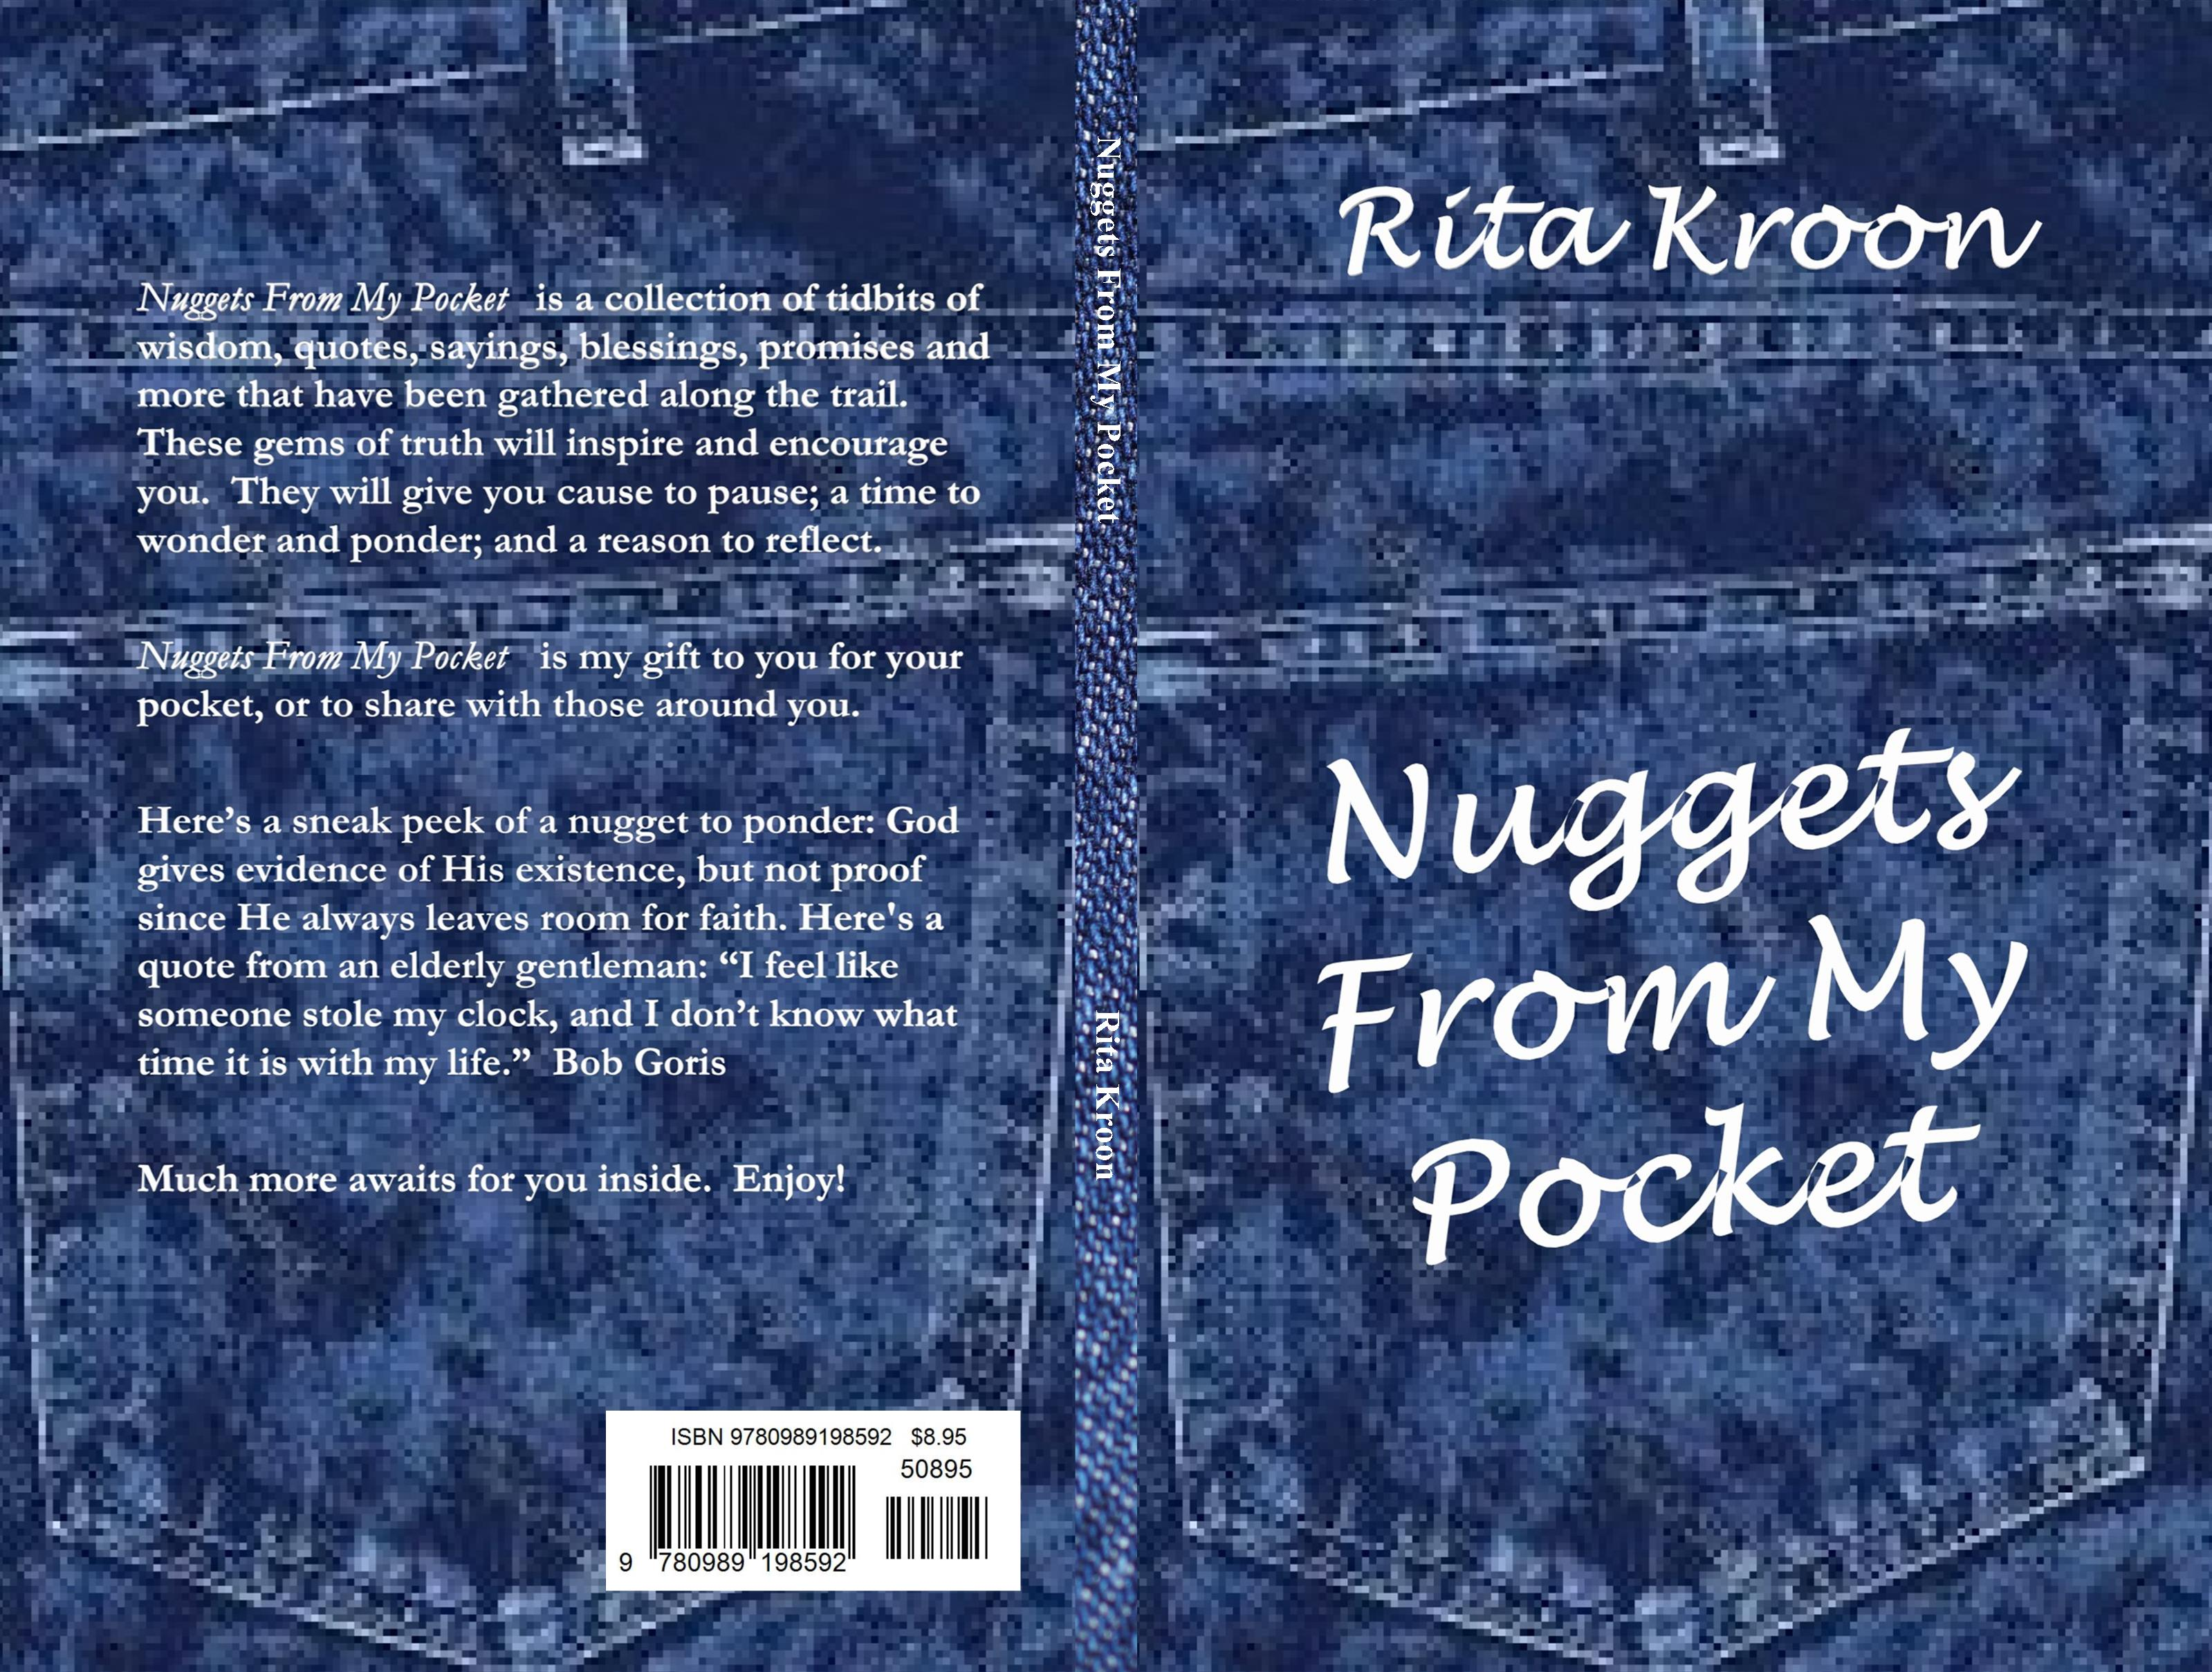 Nuggets from My Pocket cover image